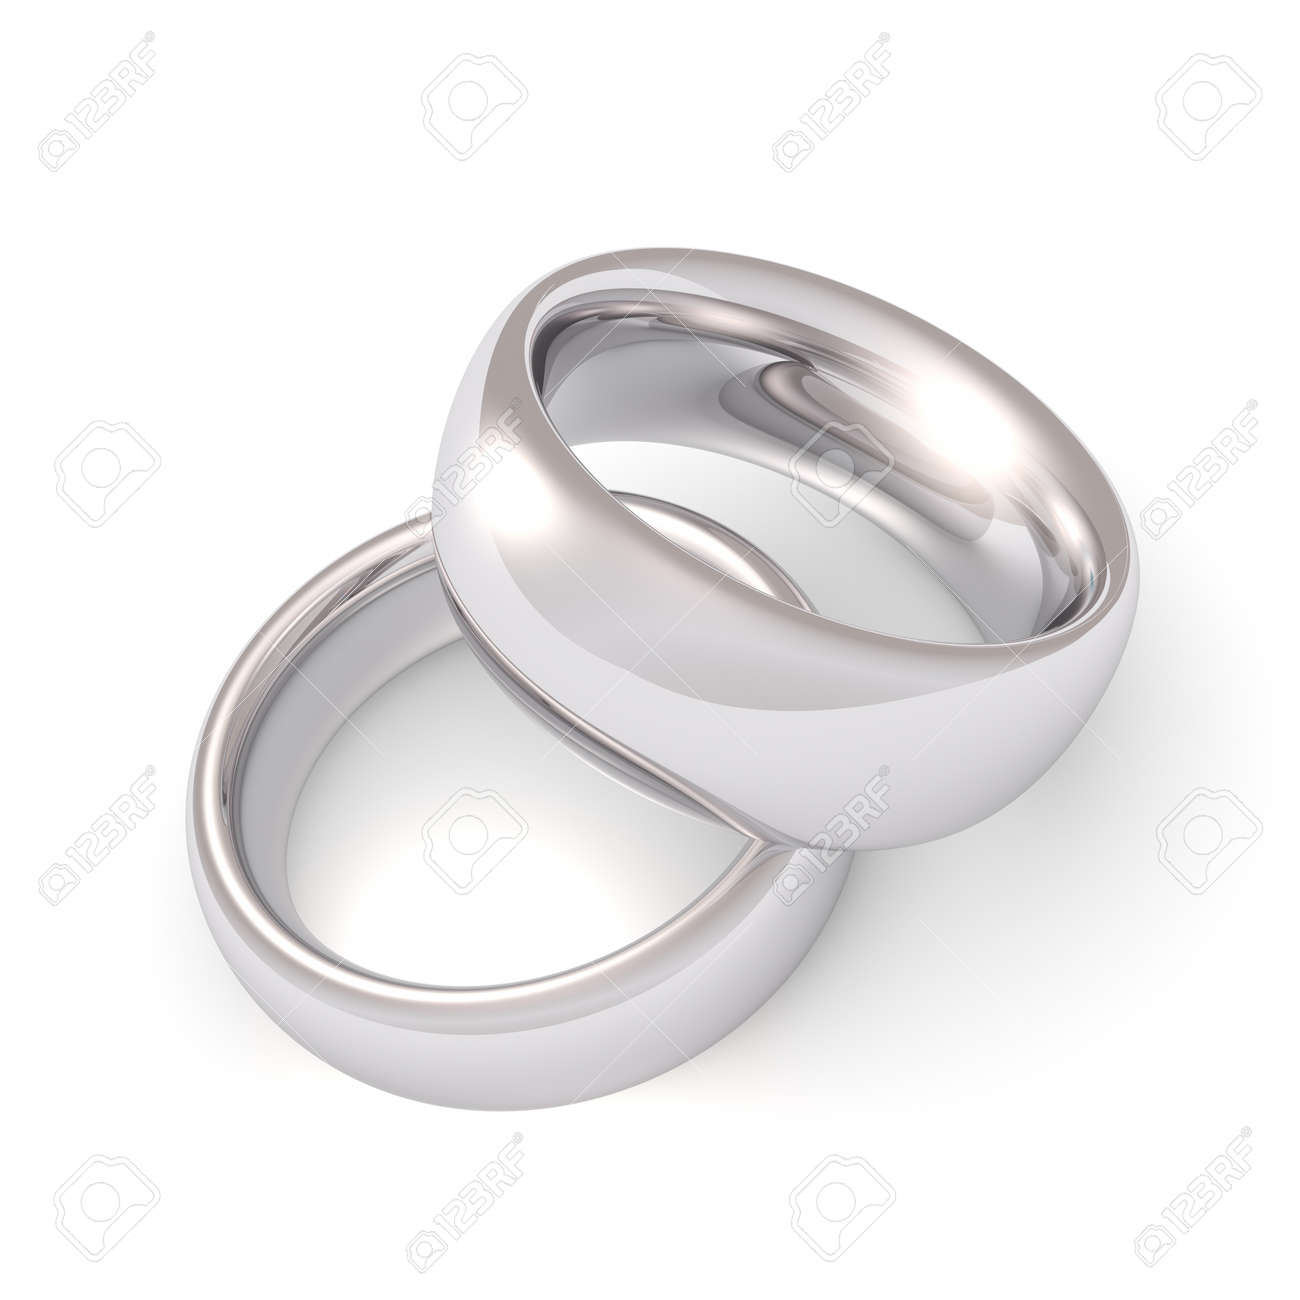 Platinum his and hers wedding rings wedding bands his - A His And Hers Set Of Platinum Wedding Bands Stock Photo 7032819